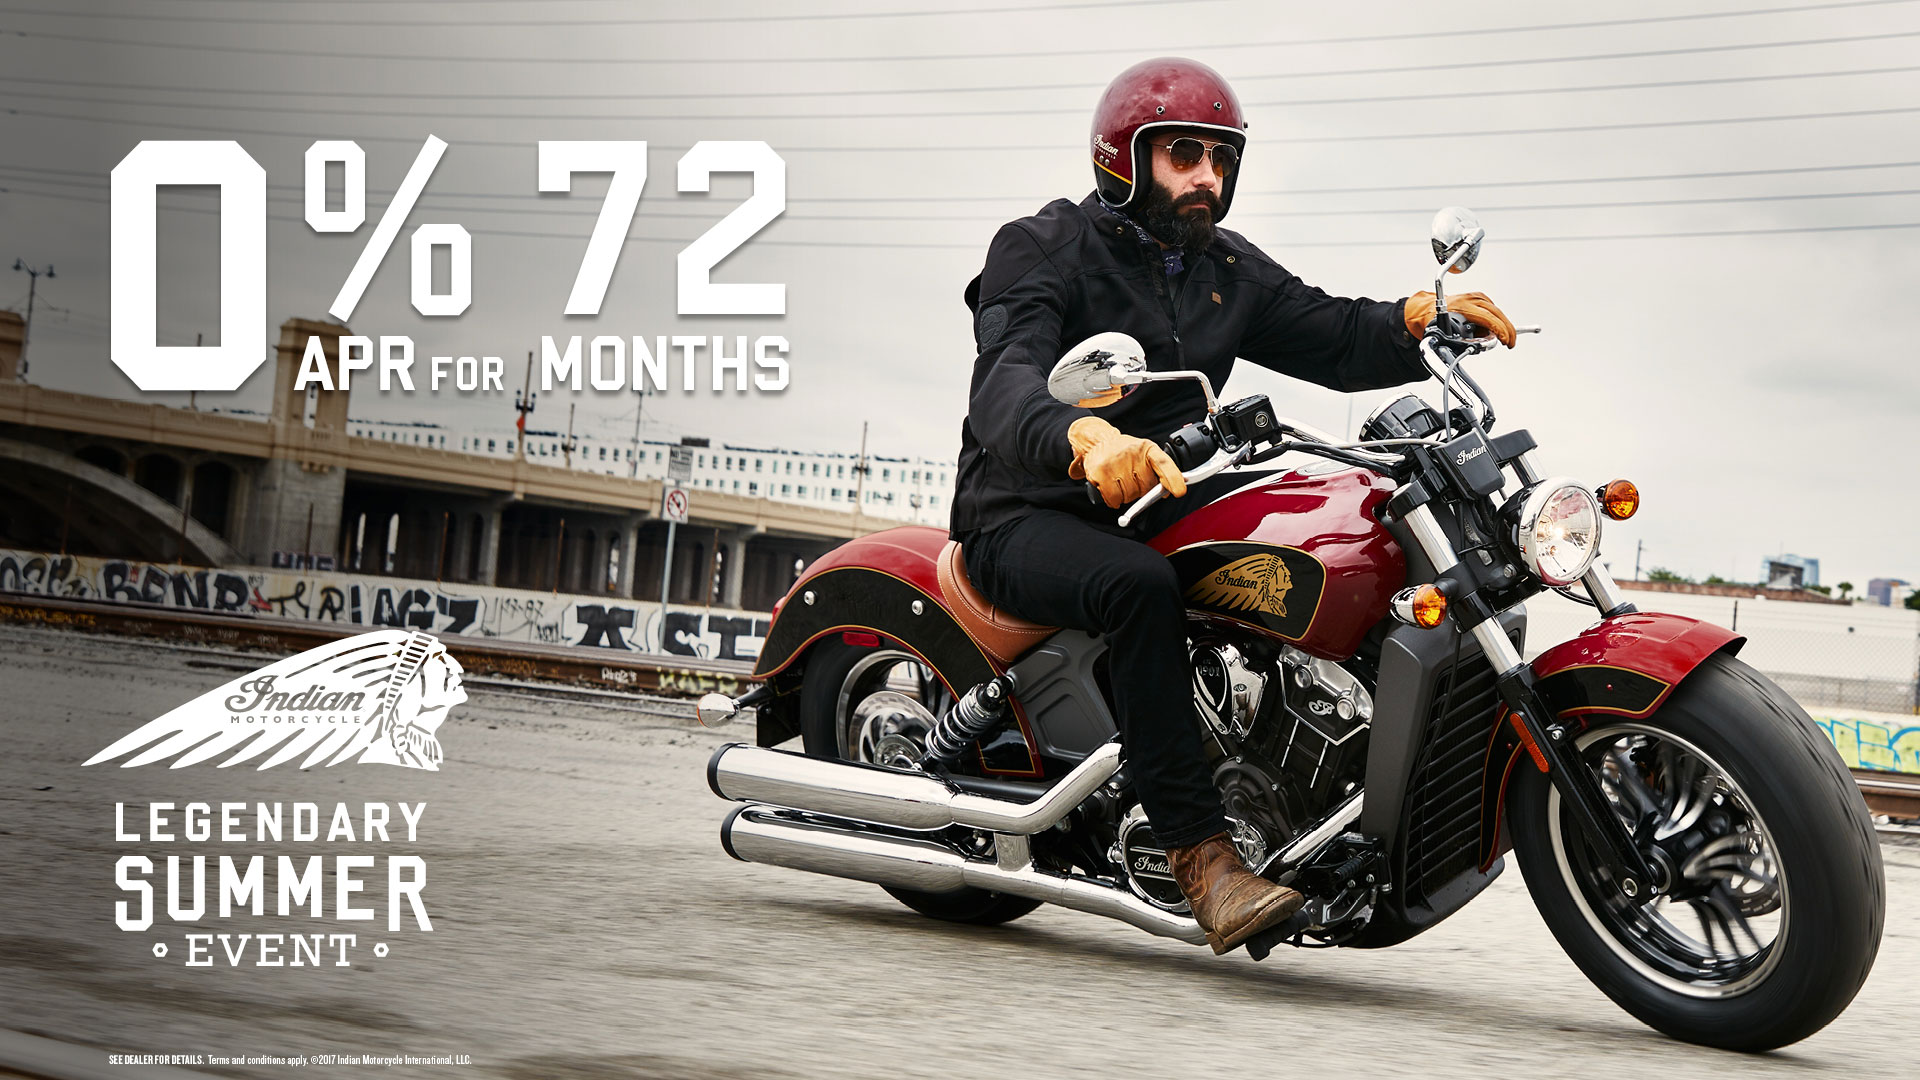 0% financing for 72 months. Bonus on the purchase of any new 2017 Midsize Indian Motorcycle through October 31, 2017